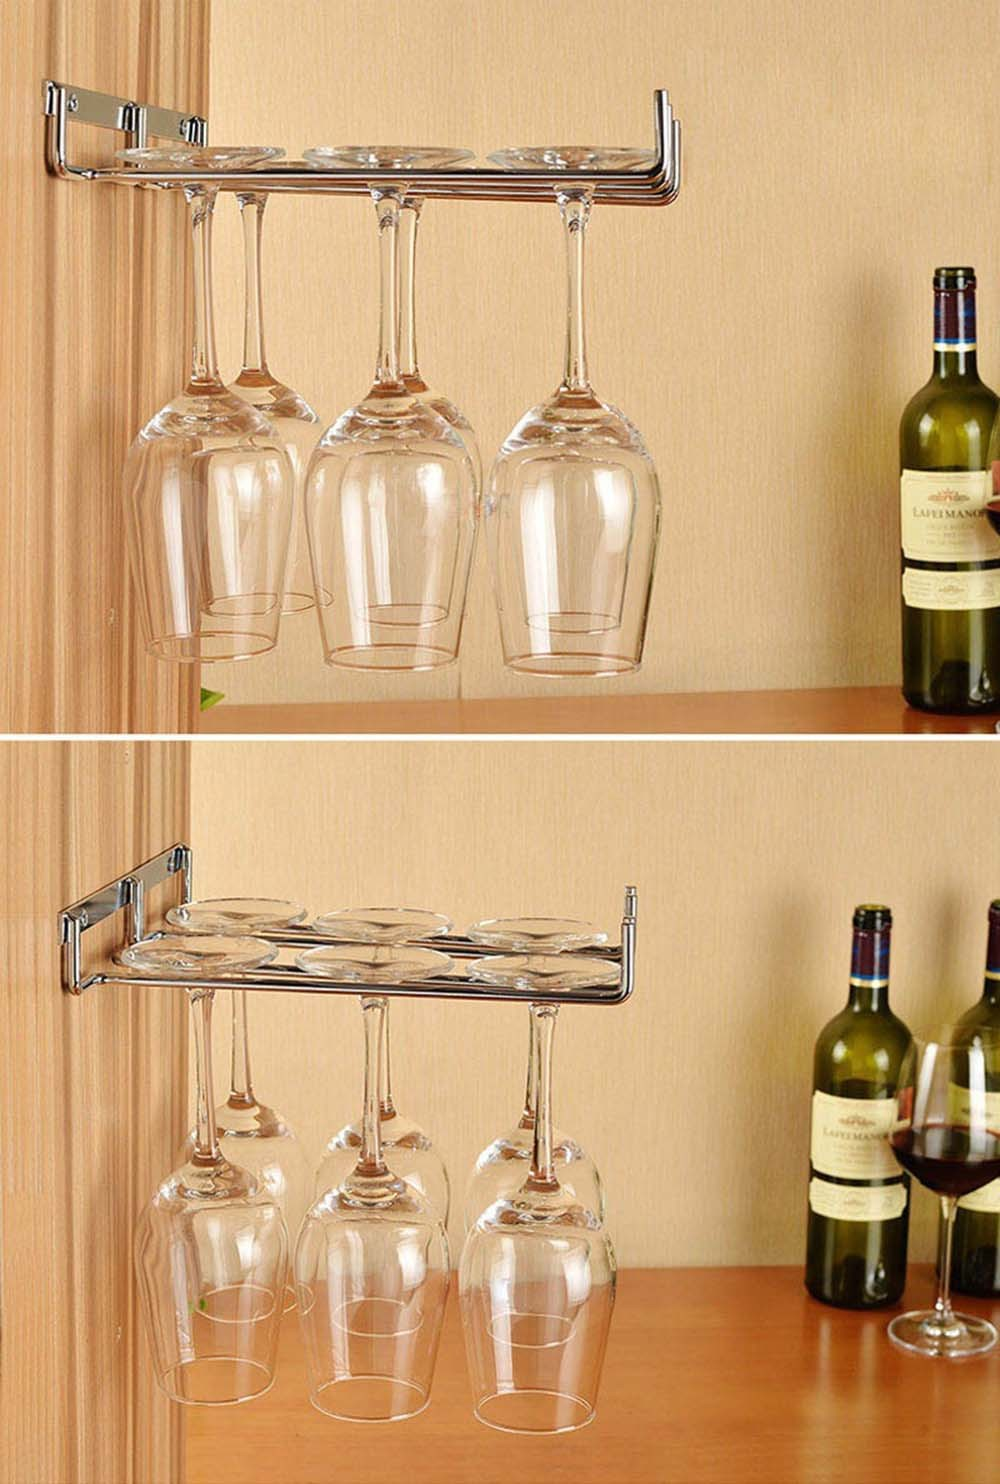 Hanging-Metal-Wine-Cup-Rack-SilverGold-Bar-SingleDouble-Rack-Wine-Stemware-Glass-Bottle-Goblet-Inverted-Holder-KC0026 (2)